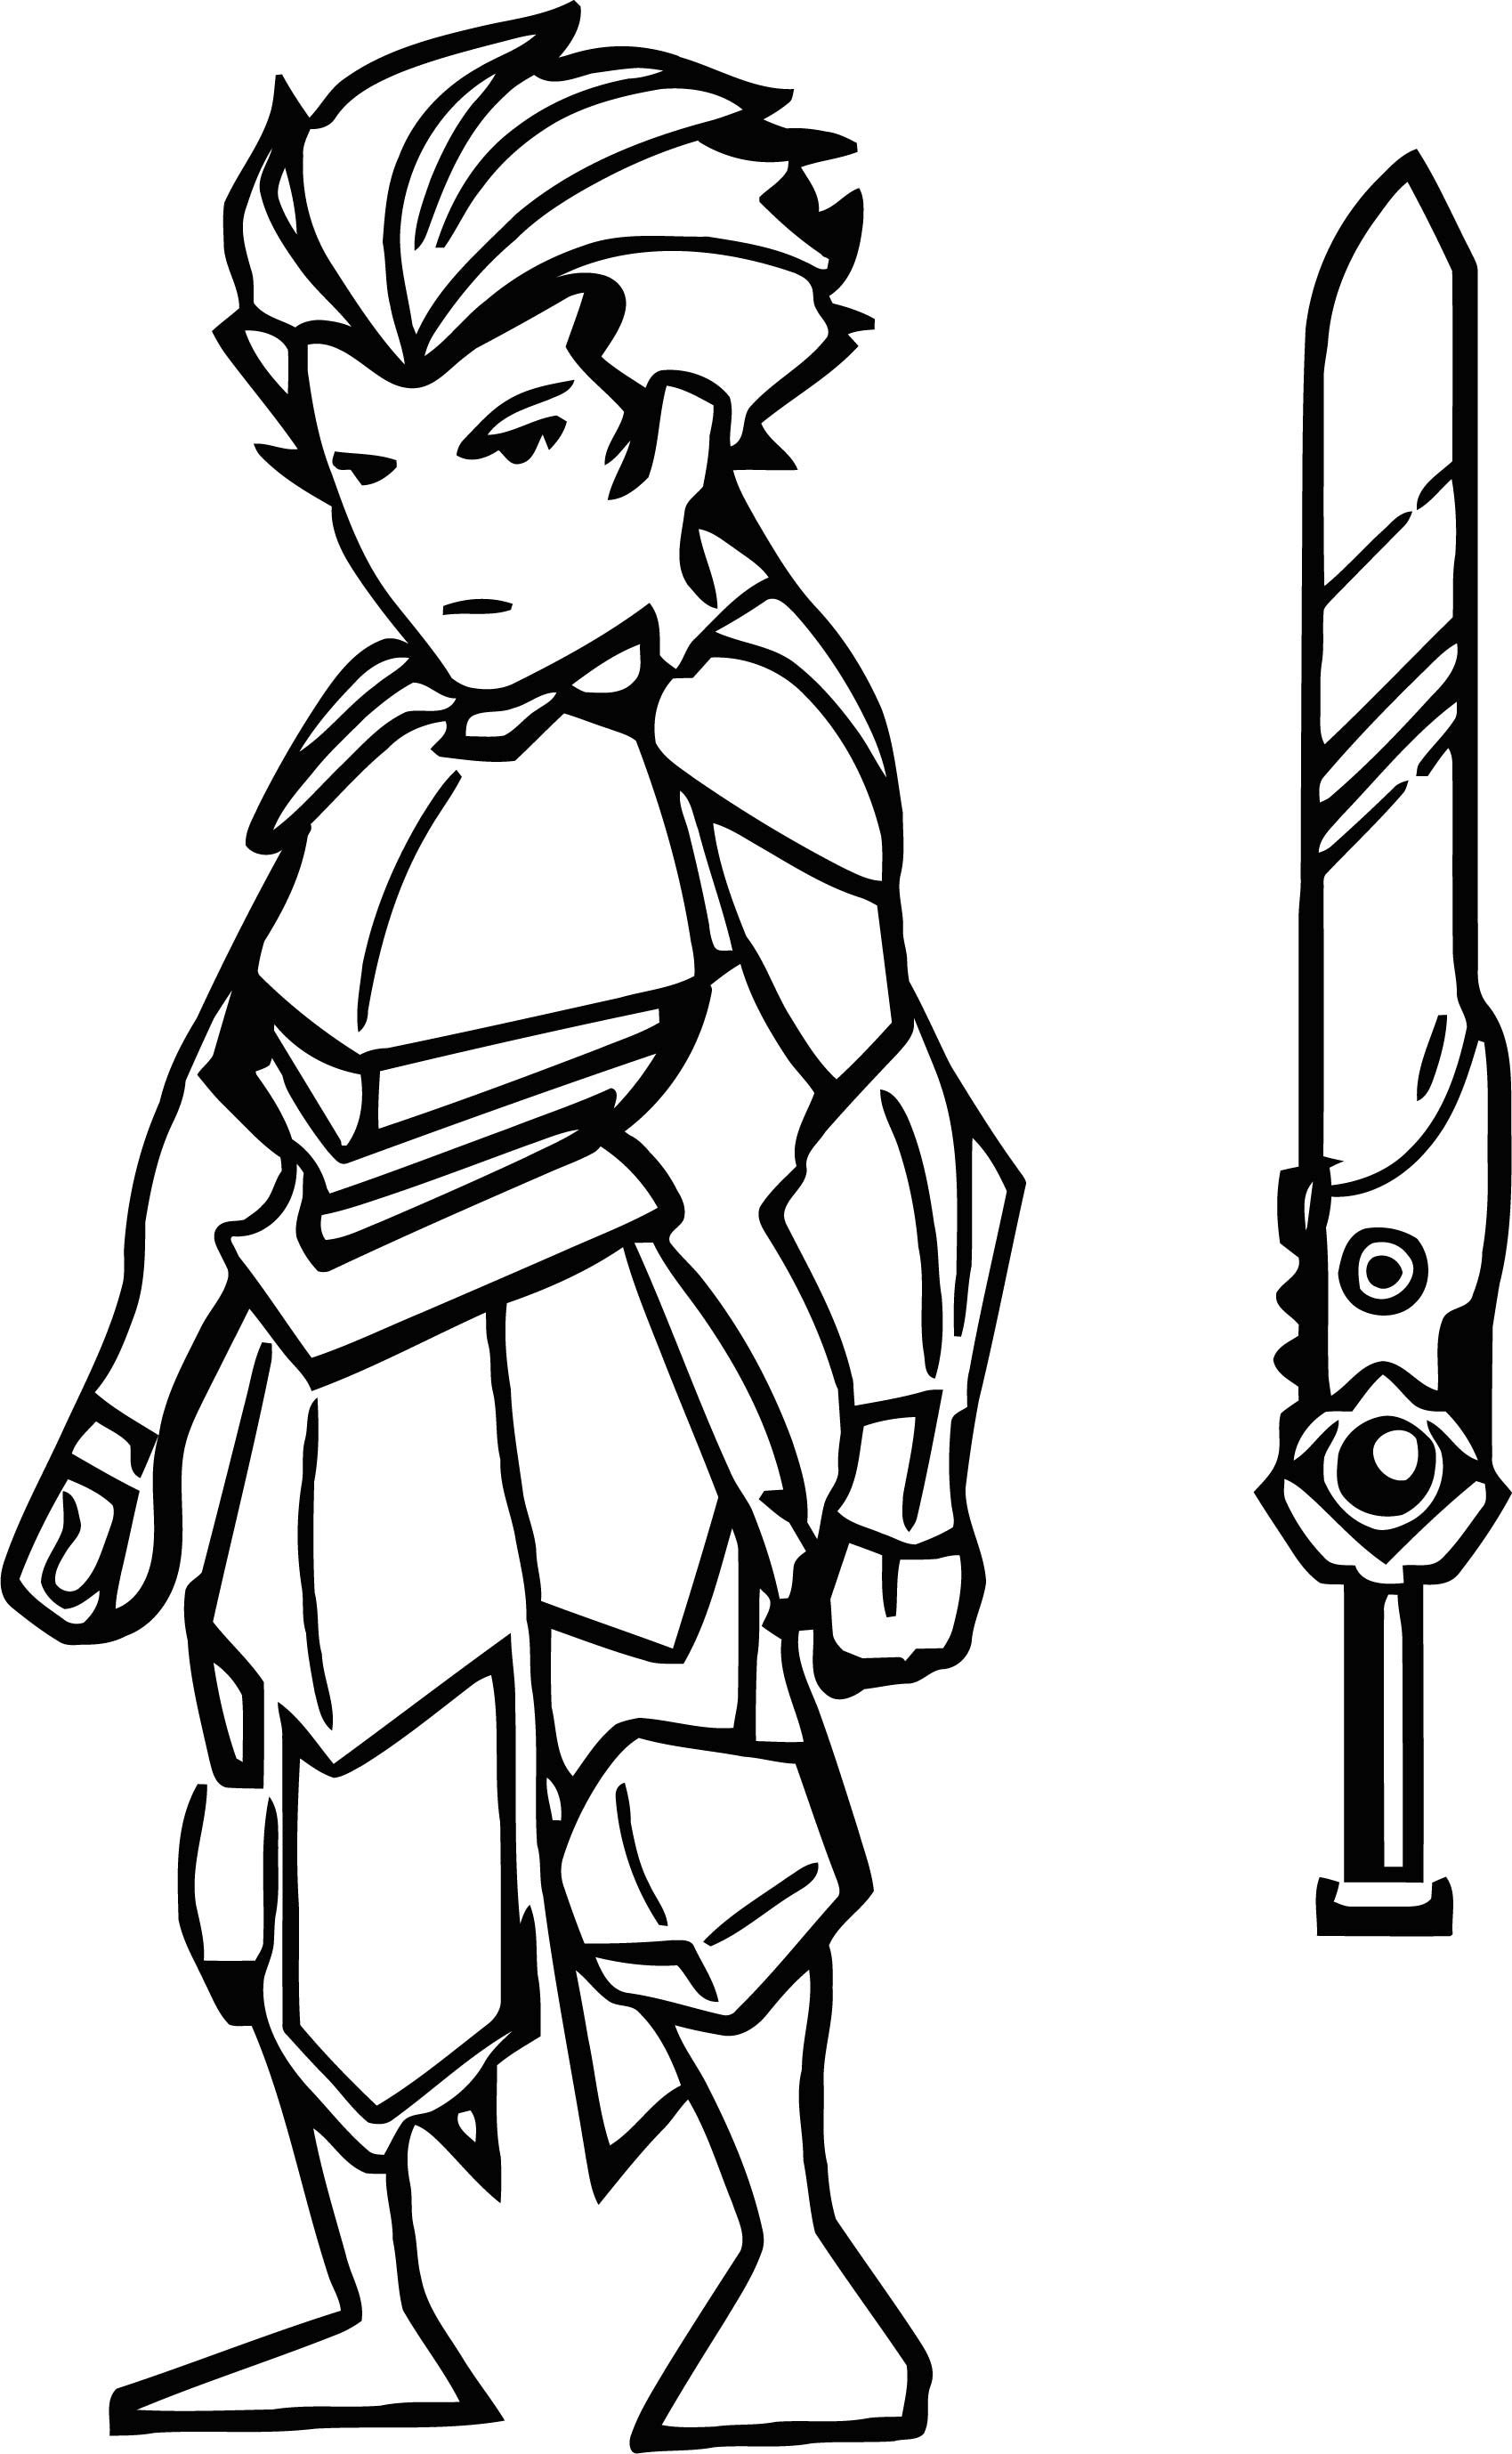 Final Character Design Game Cartoonized Coloring Page